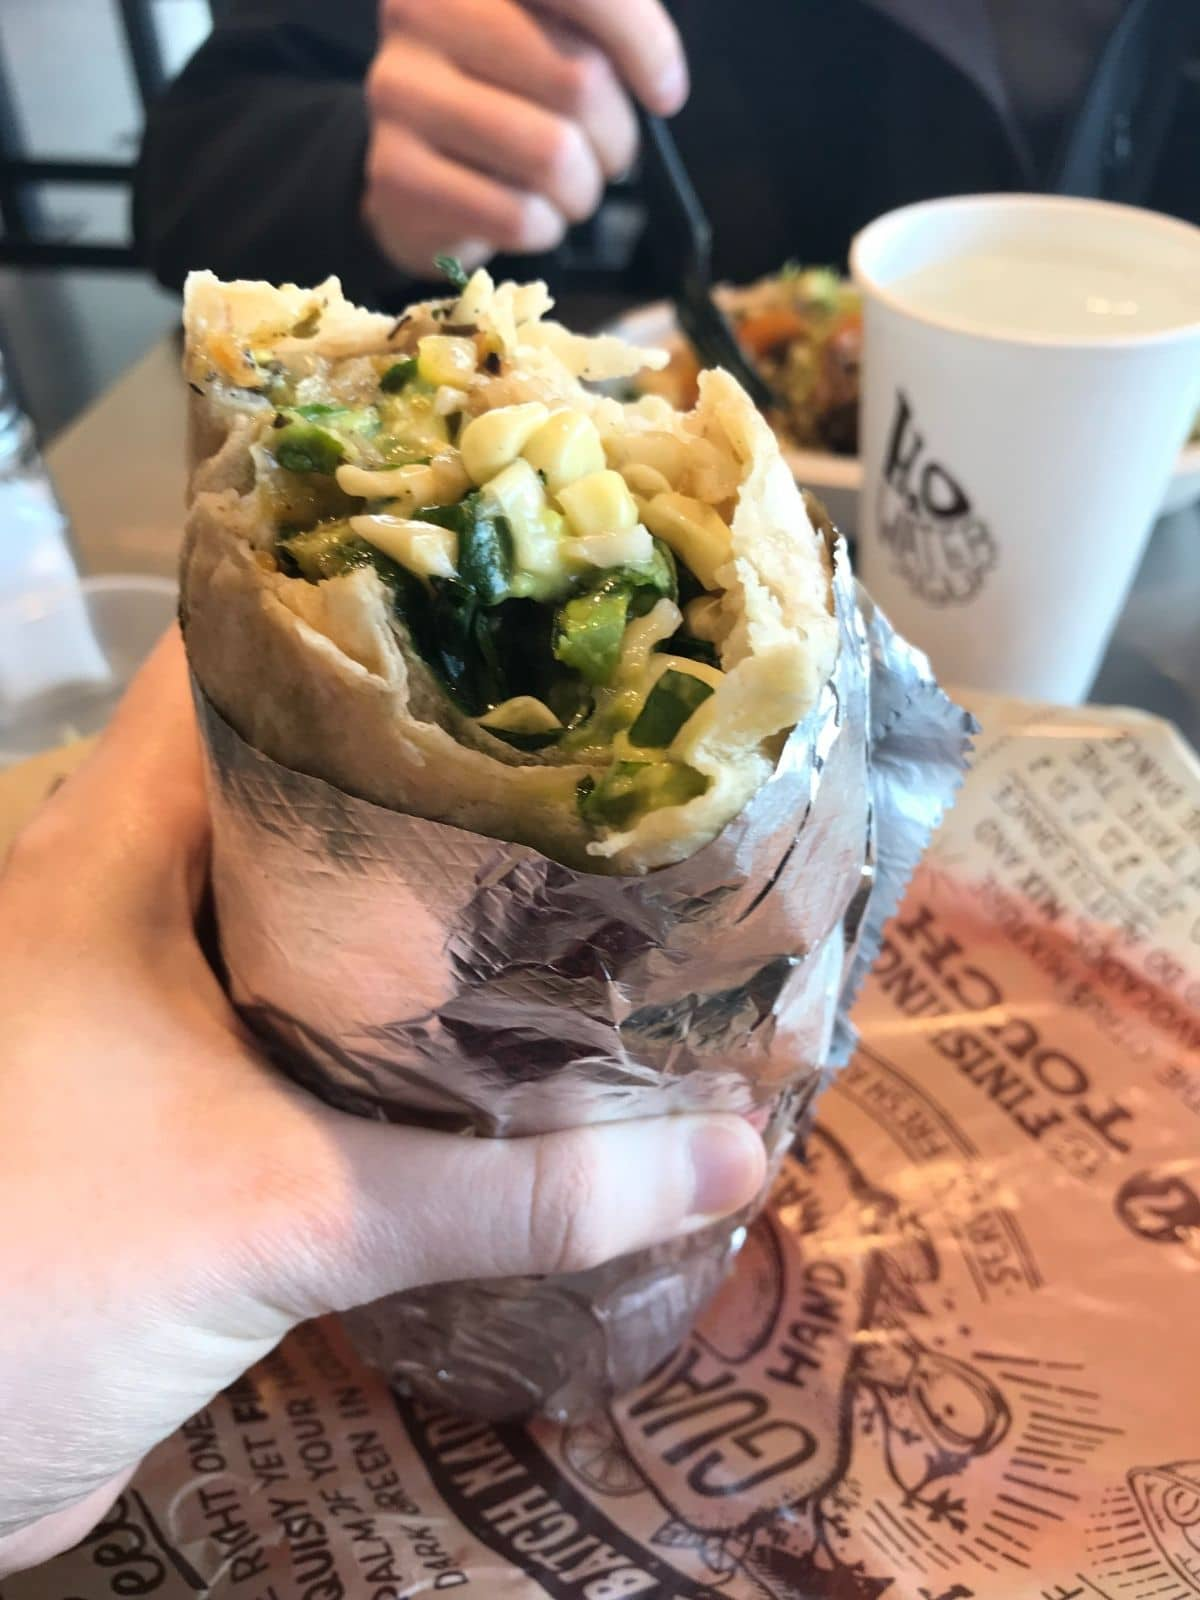 chipotle veggie burrito wrapped in foil and being held up with a water cup in the background